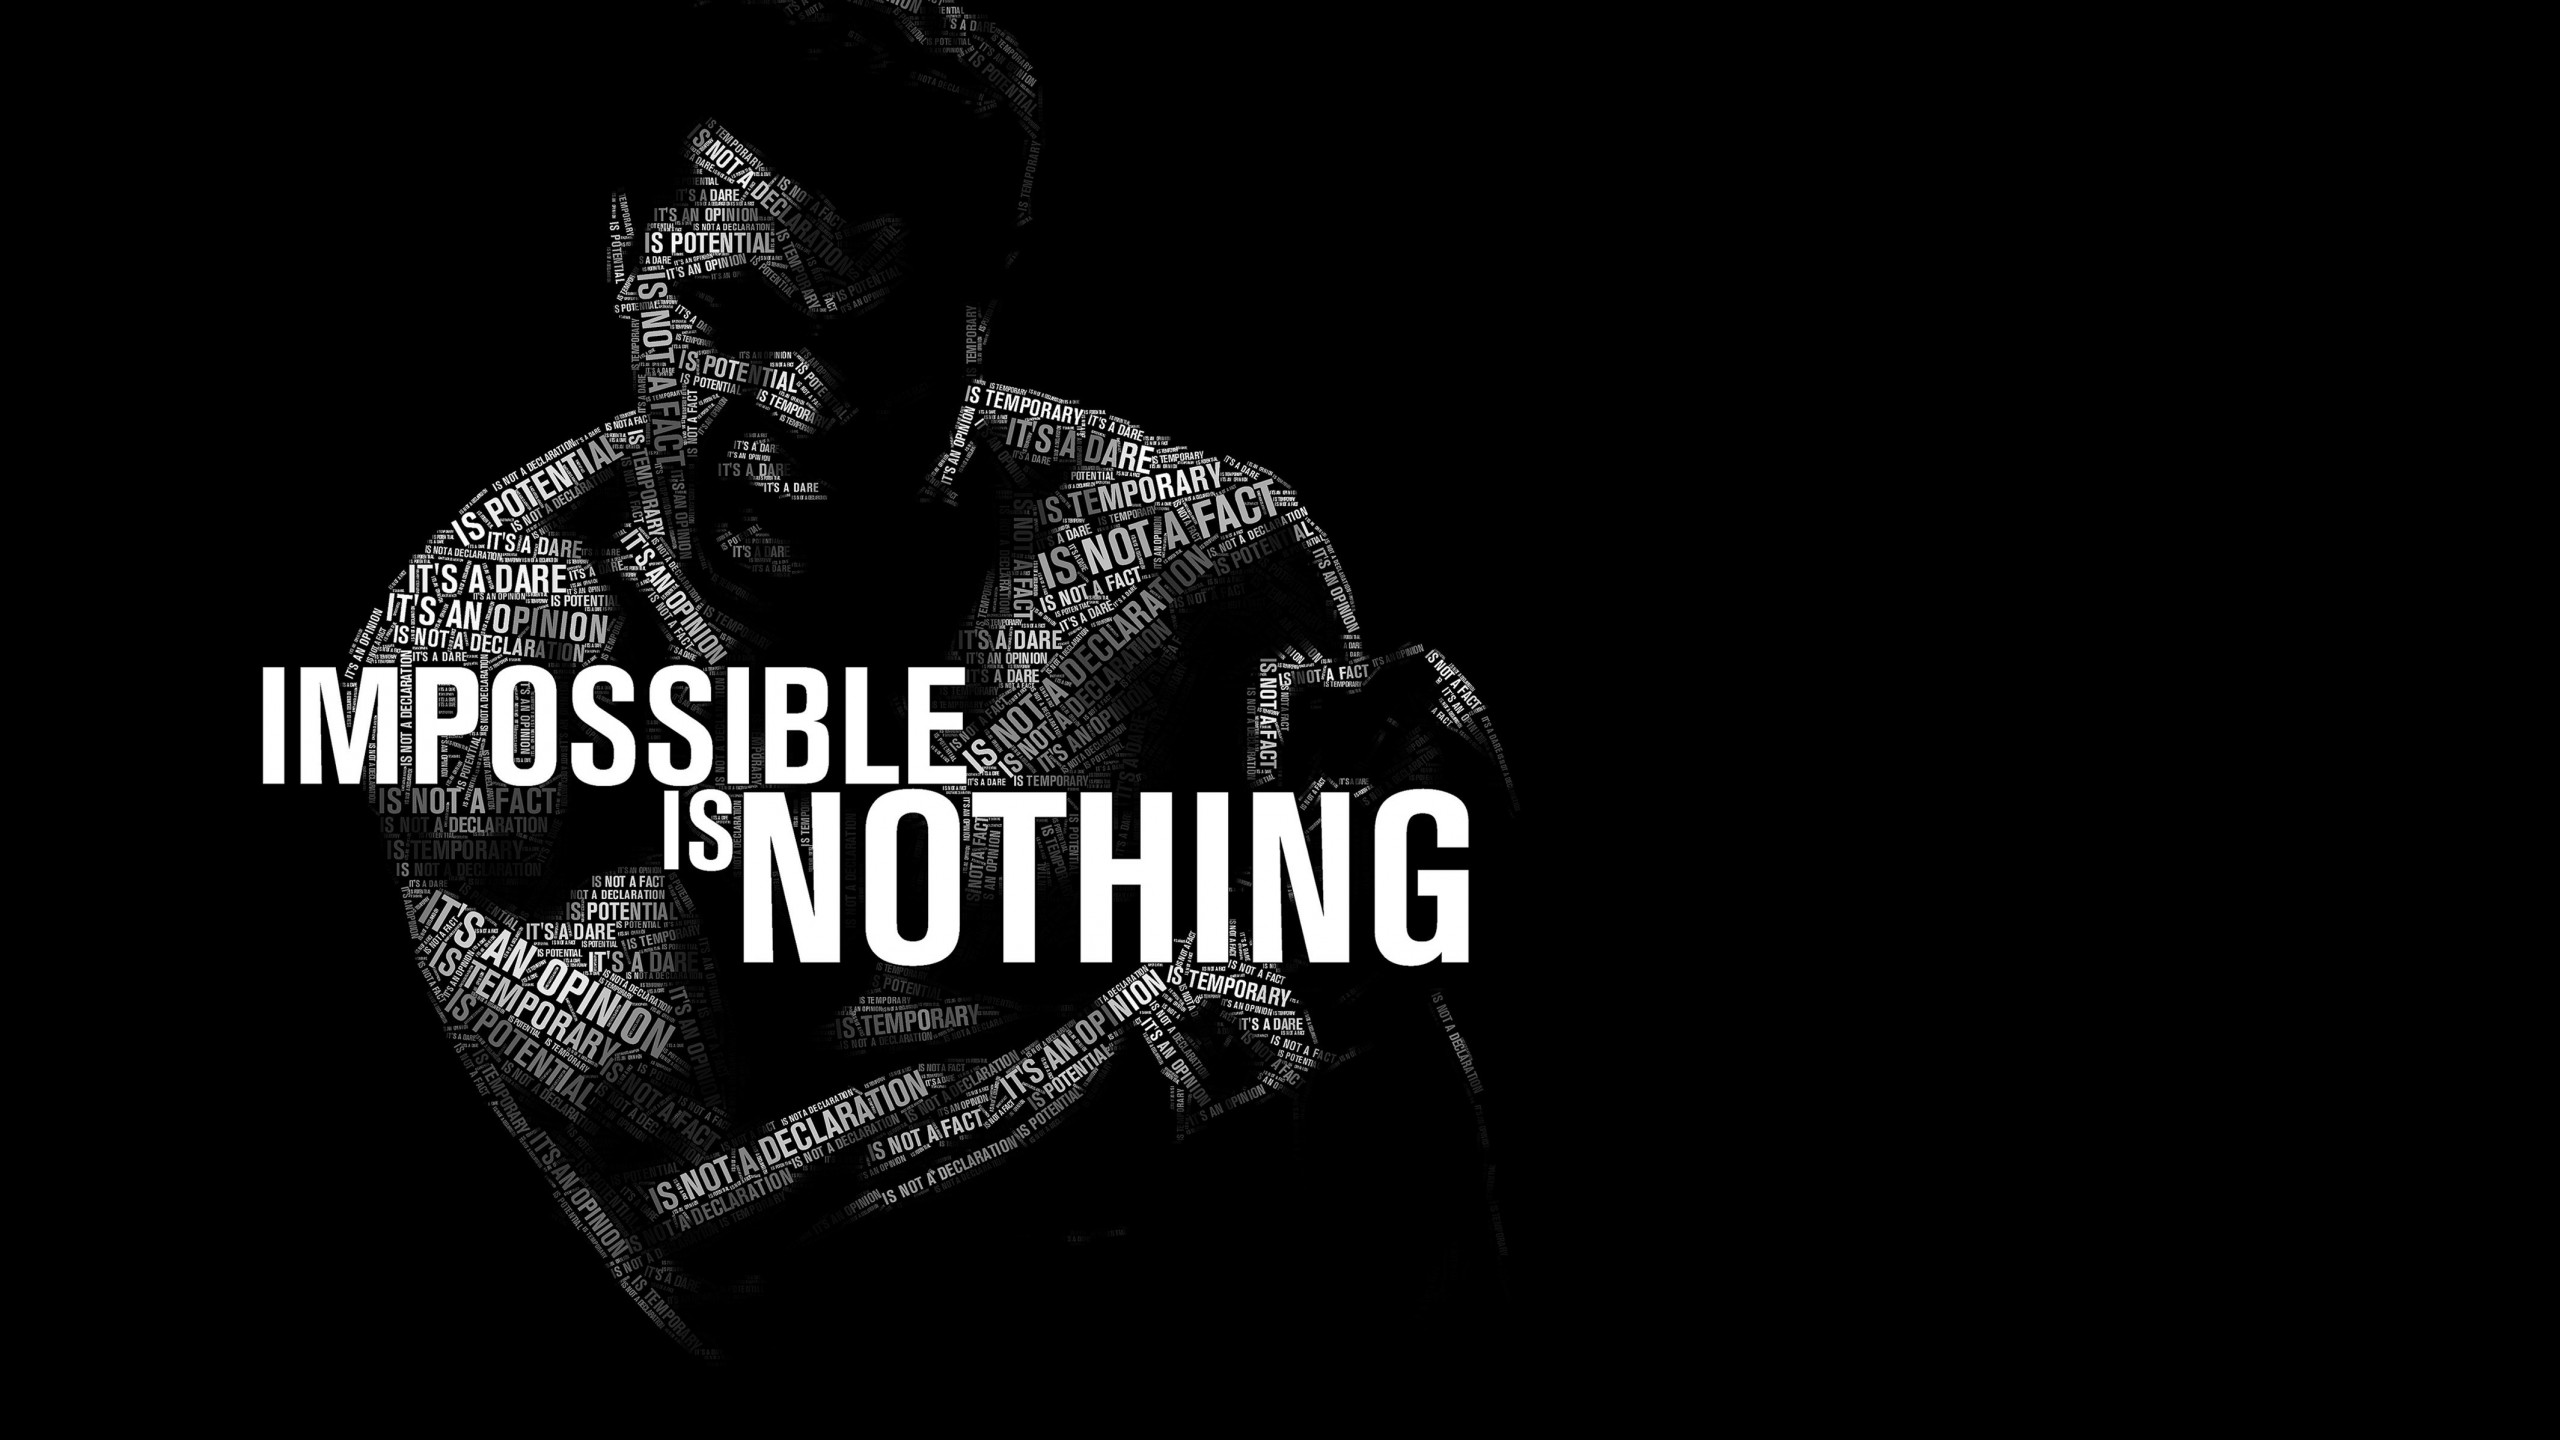 Impossible Is Nothing - Muhammad Ali Wallpaper for Social Media YouTube Channel Art